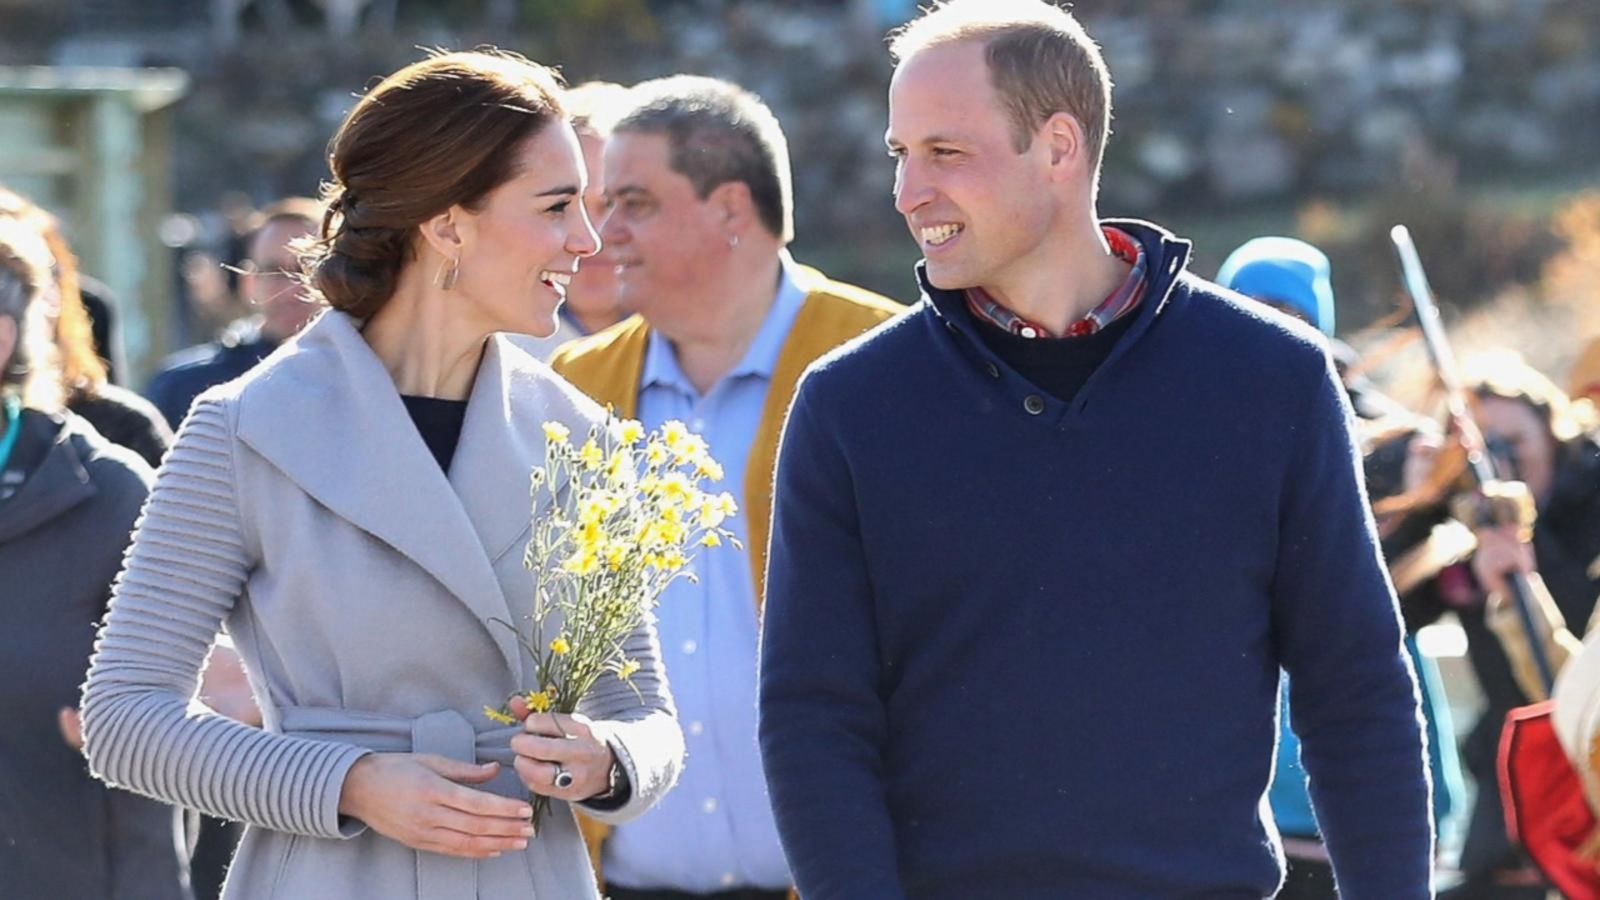 VIDEO: Royals in Love: Decoding Will and Kate's Body Language on Canada Tour